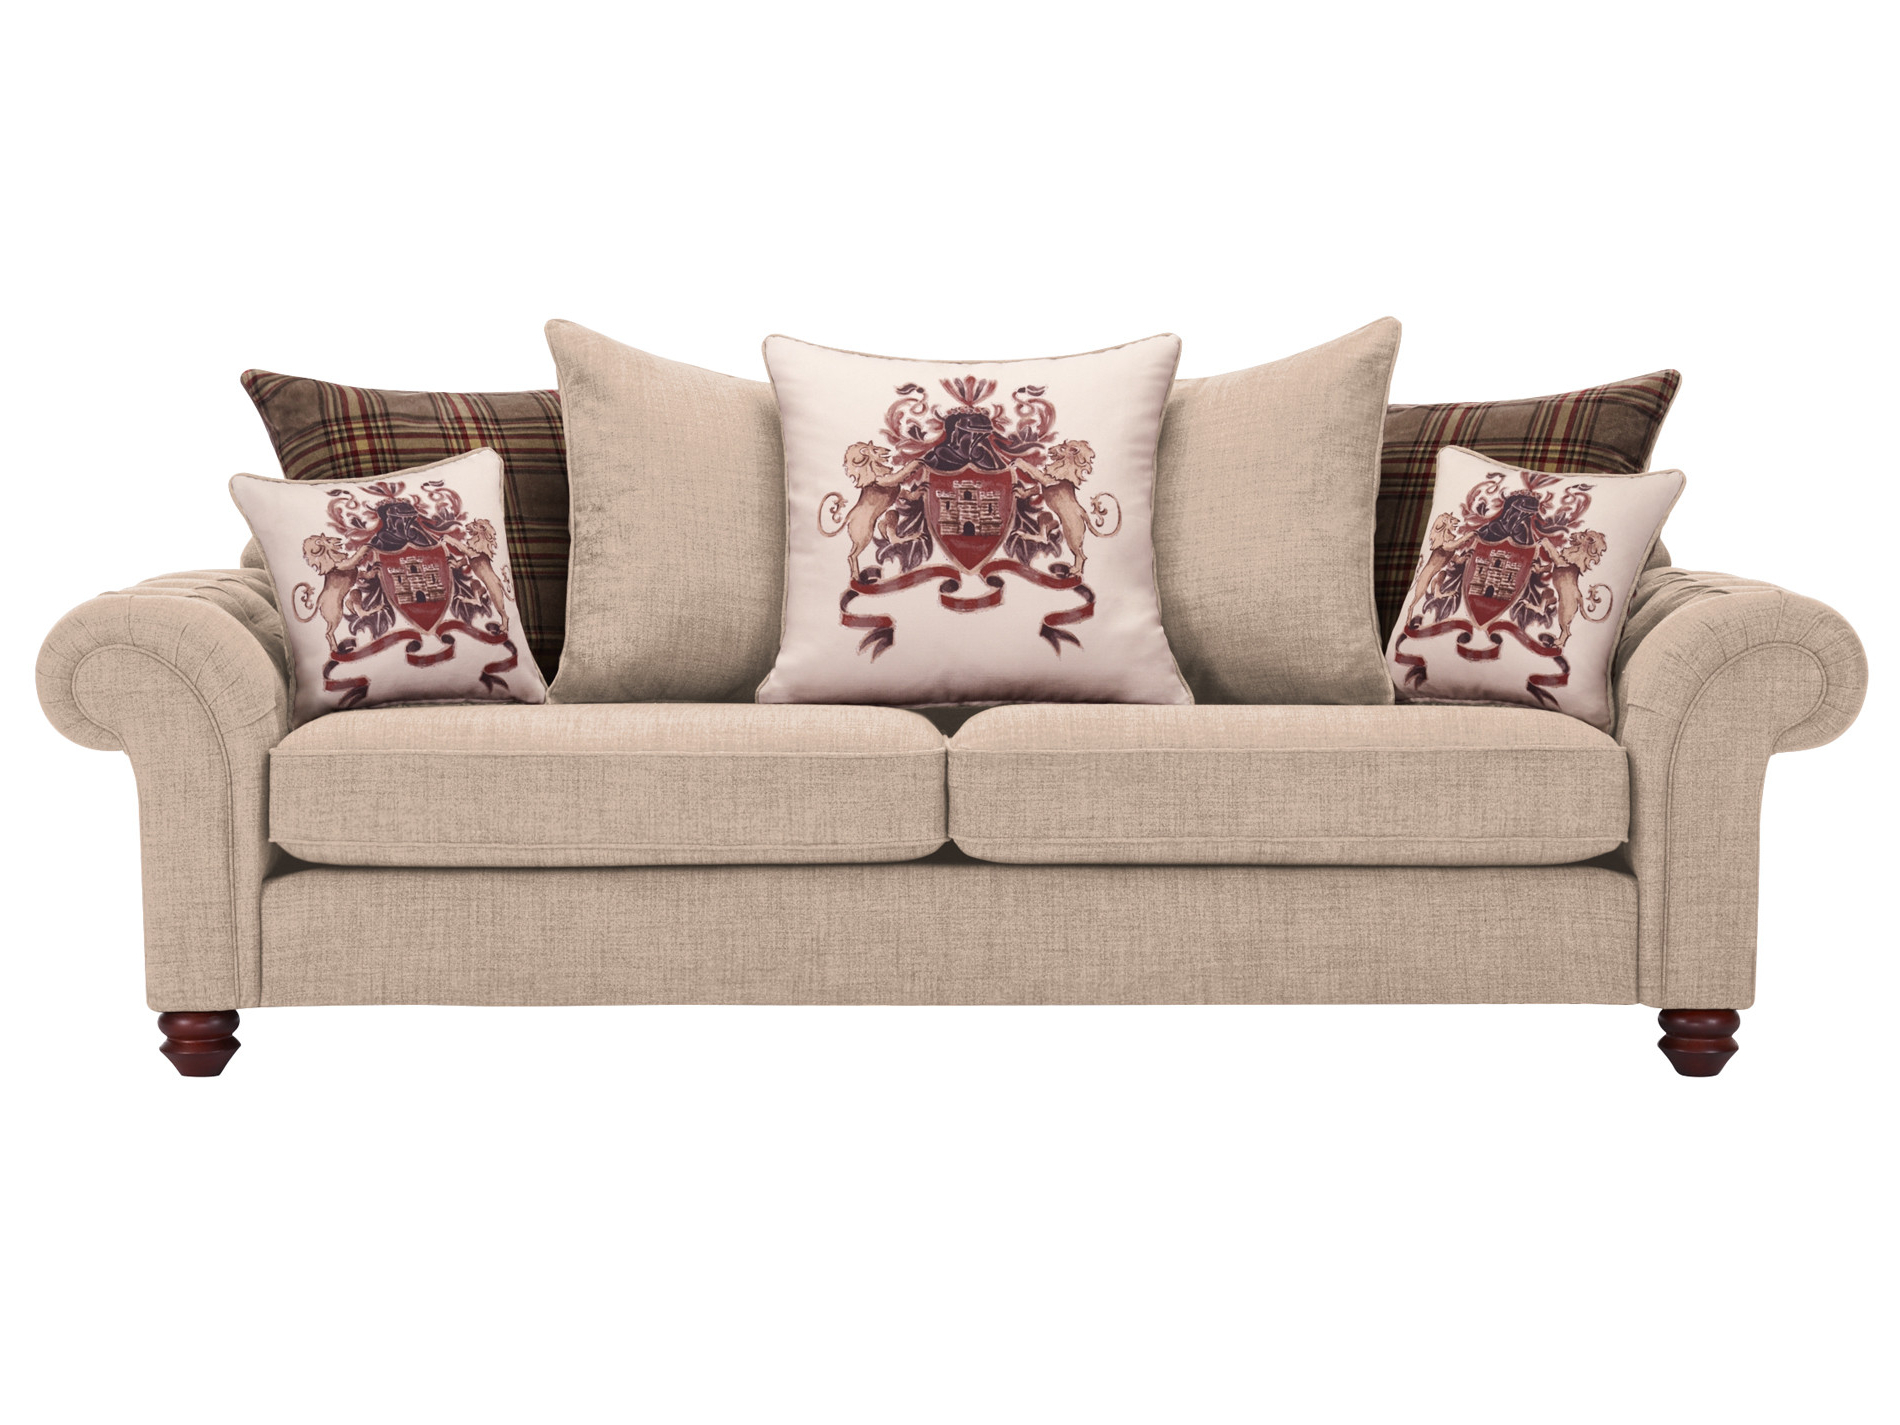 Newest Sandringham 4 Seater Pillow Back Sofa In Beige With Brown Inside Lyvia Pillowback Sofa Sectional Sofas (View 4 of 20)